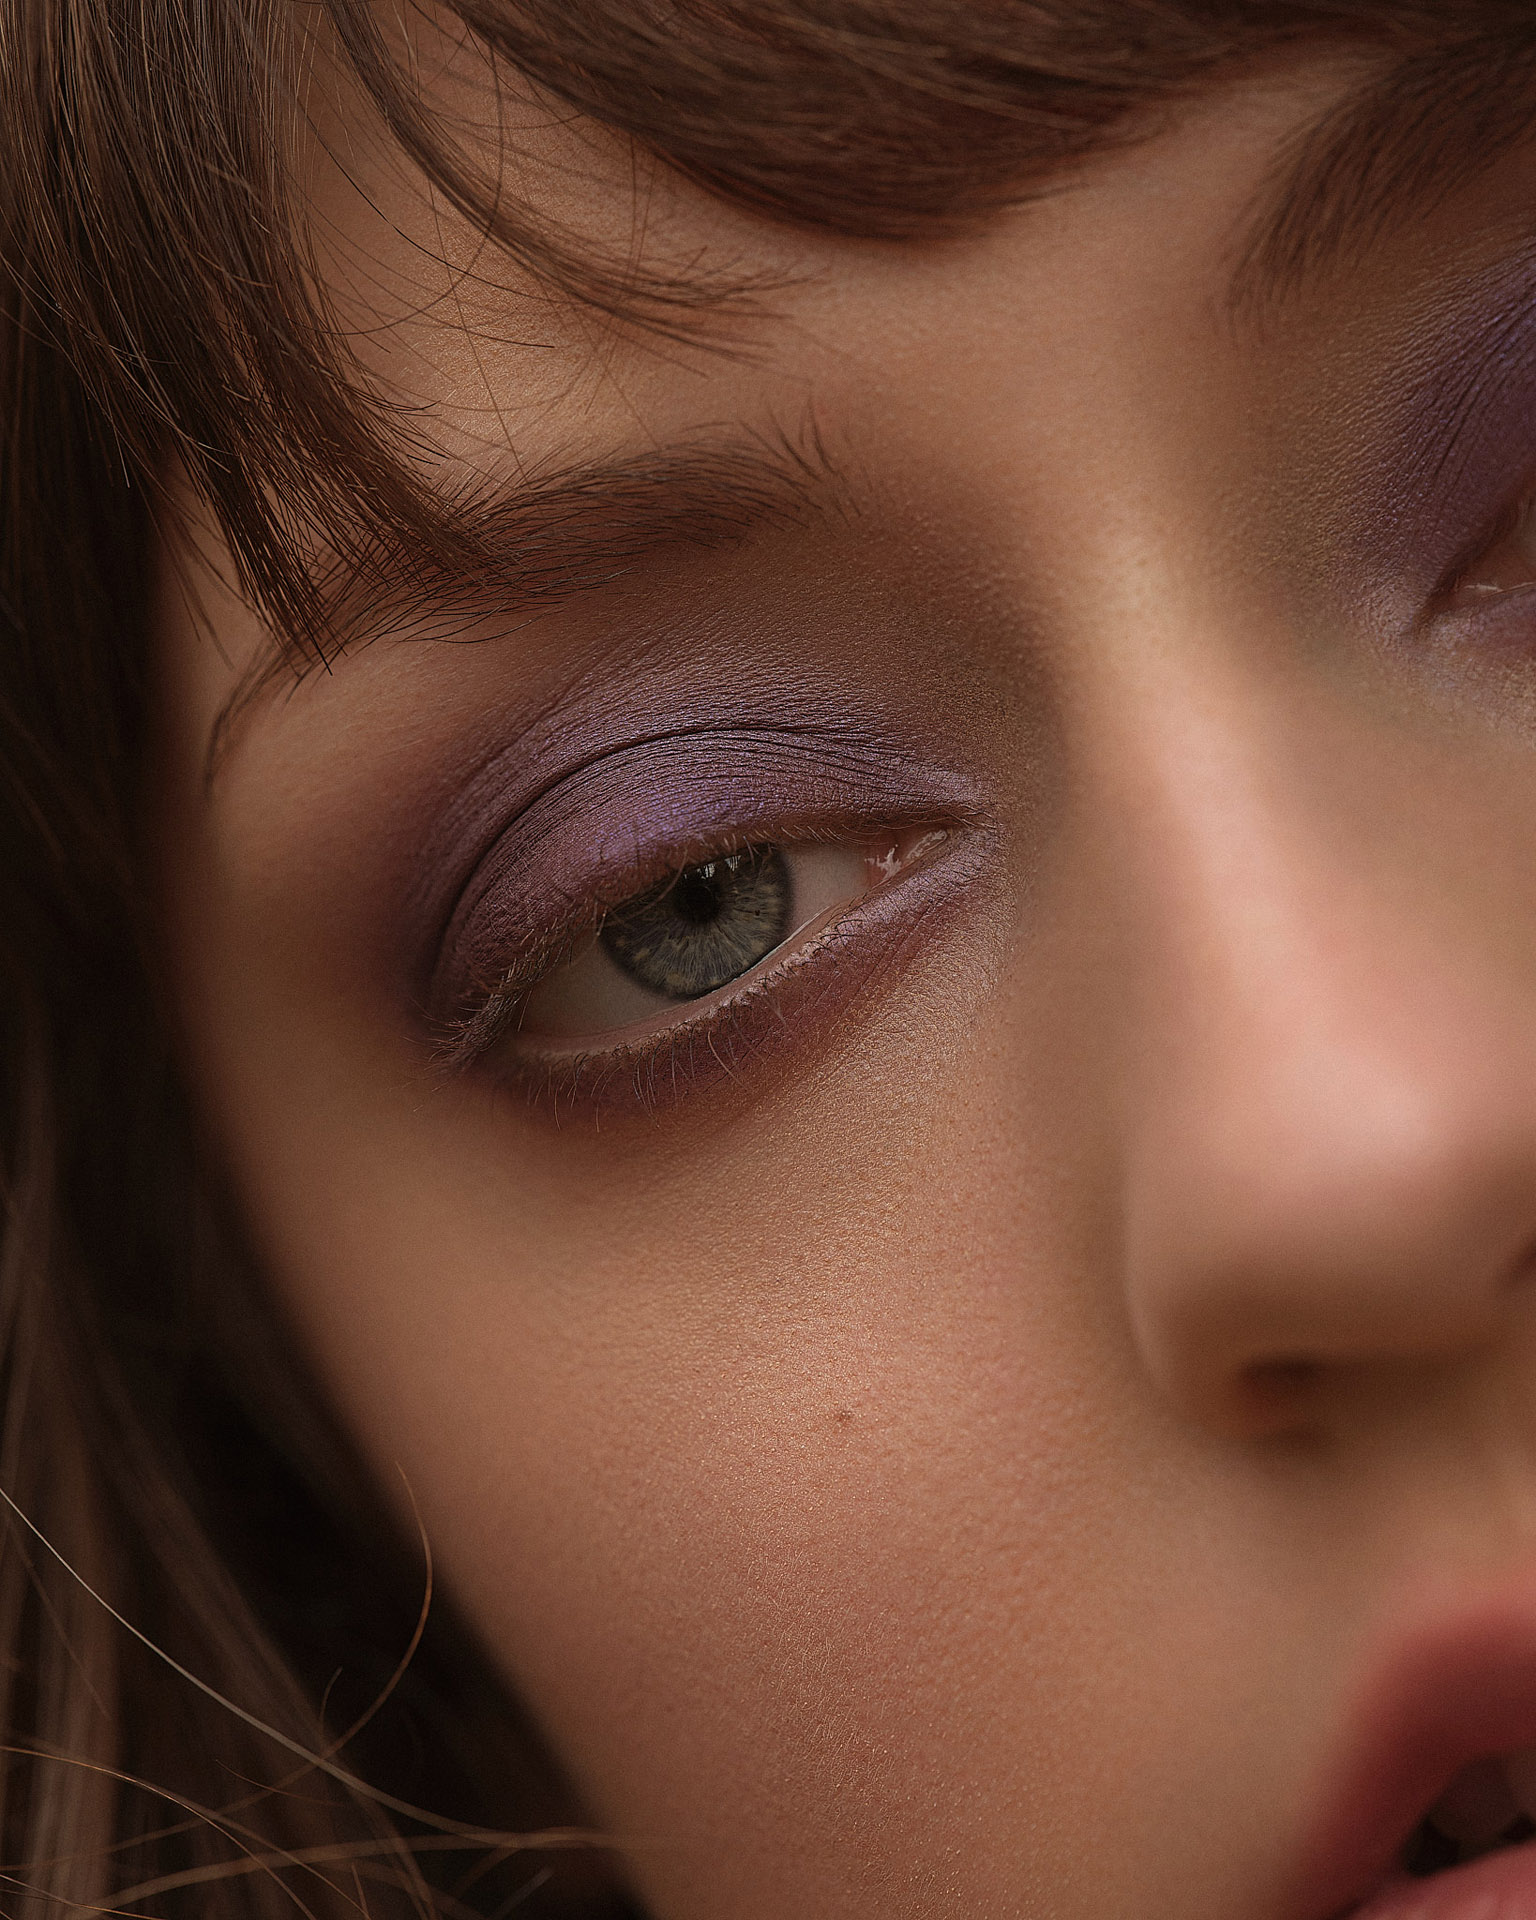 model Delphine with purple eyeshadow by Maxyme G Delisle for Flanelle Magazine